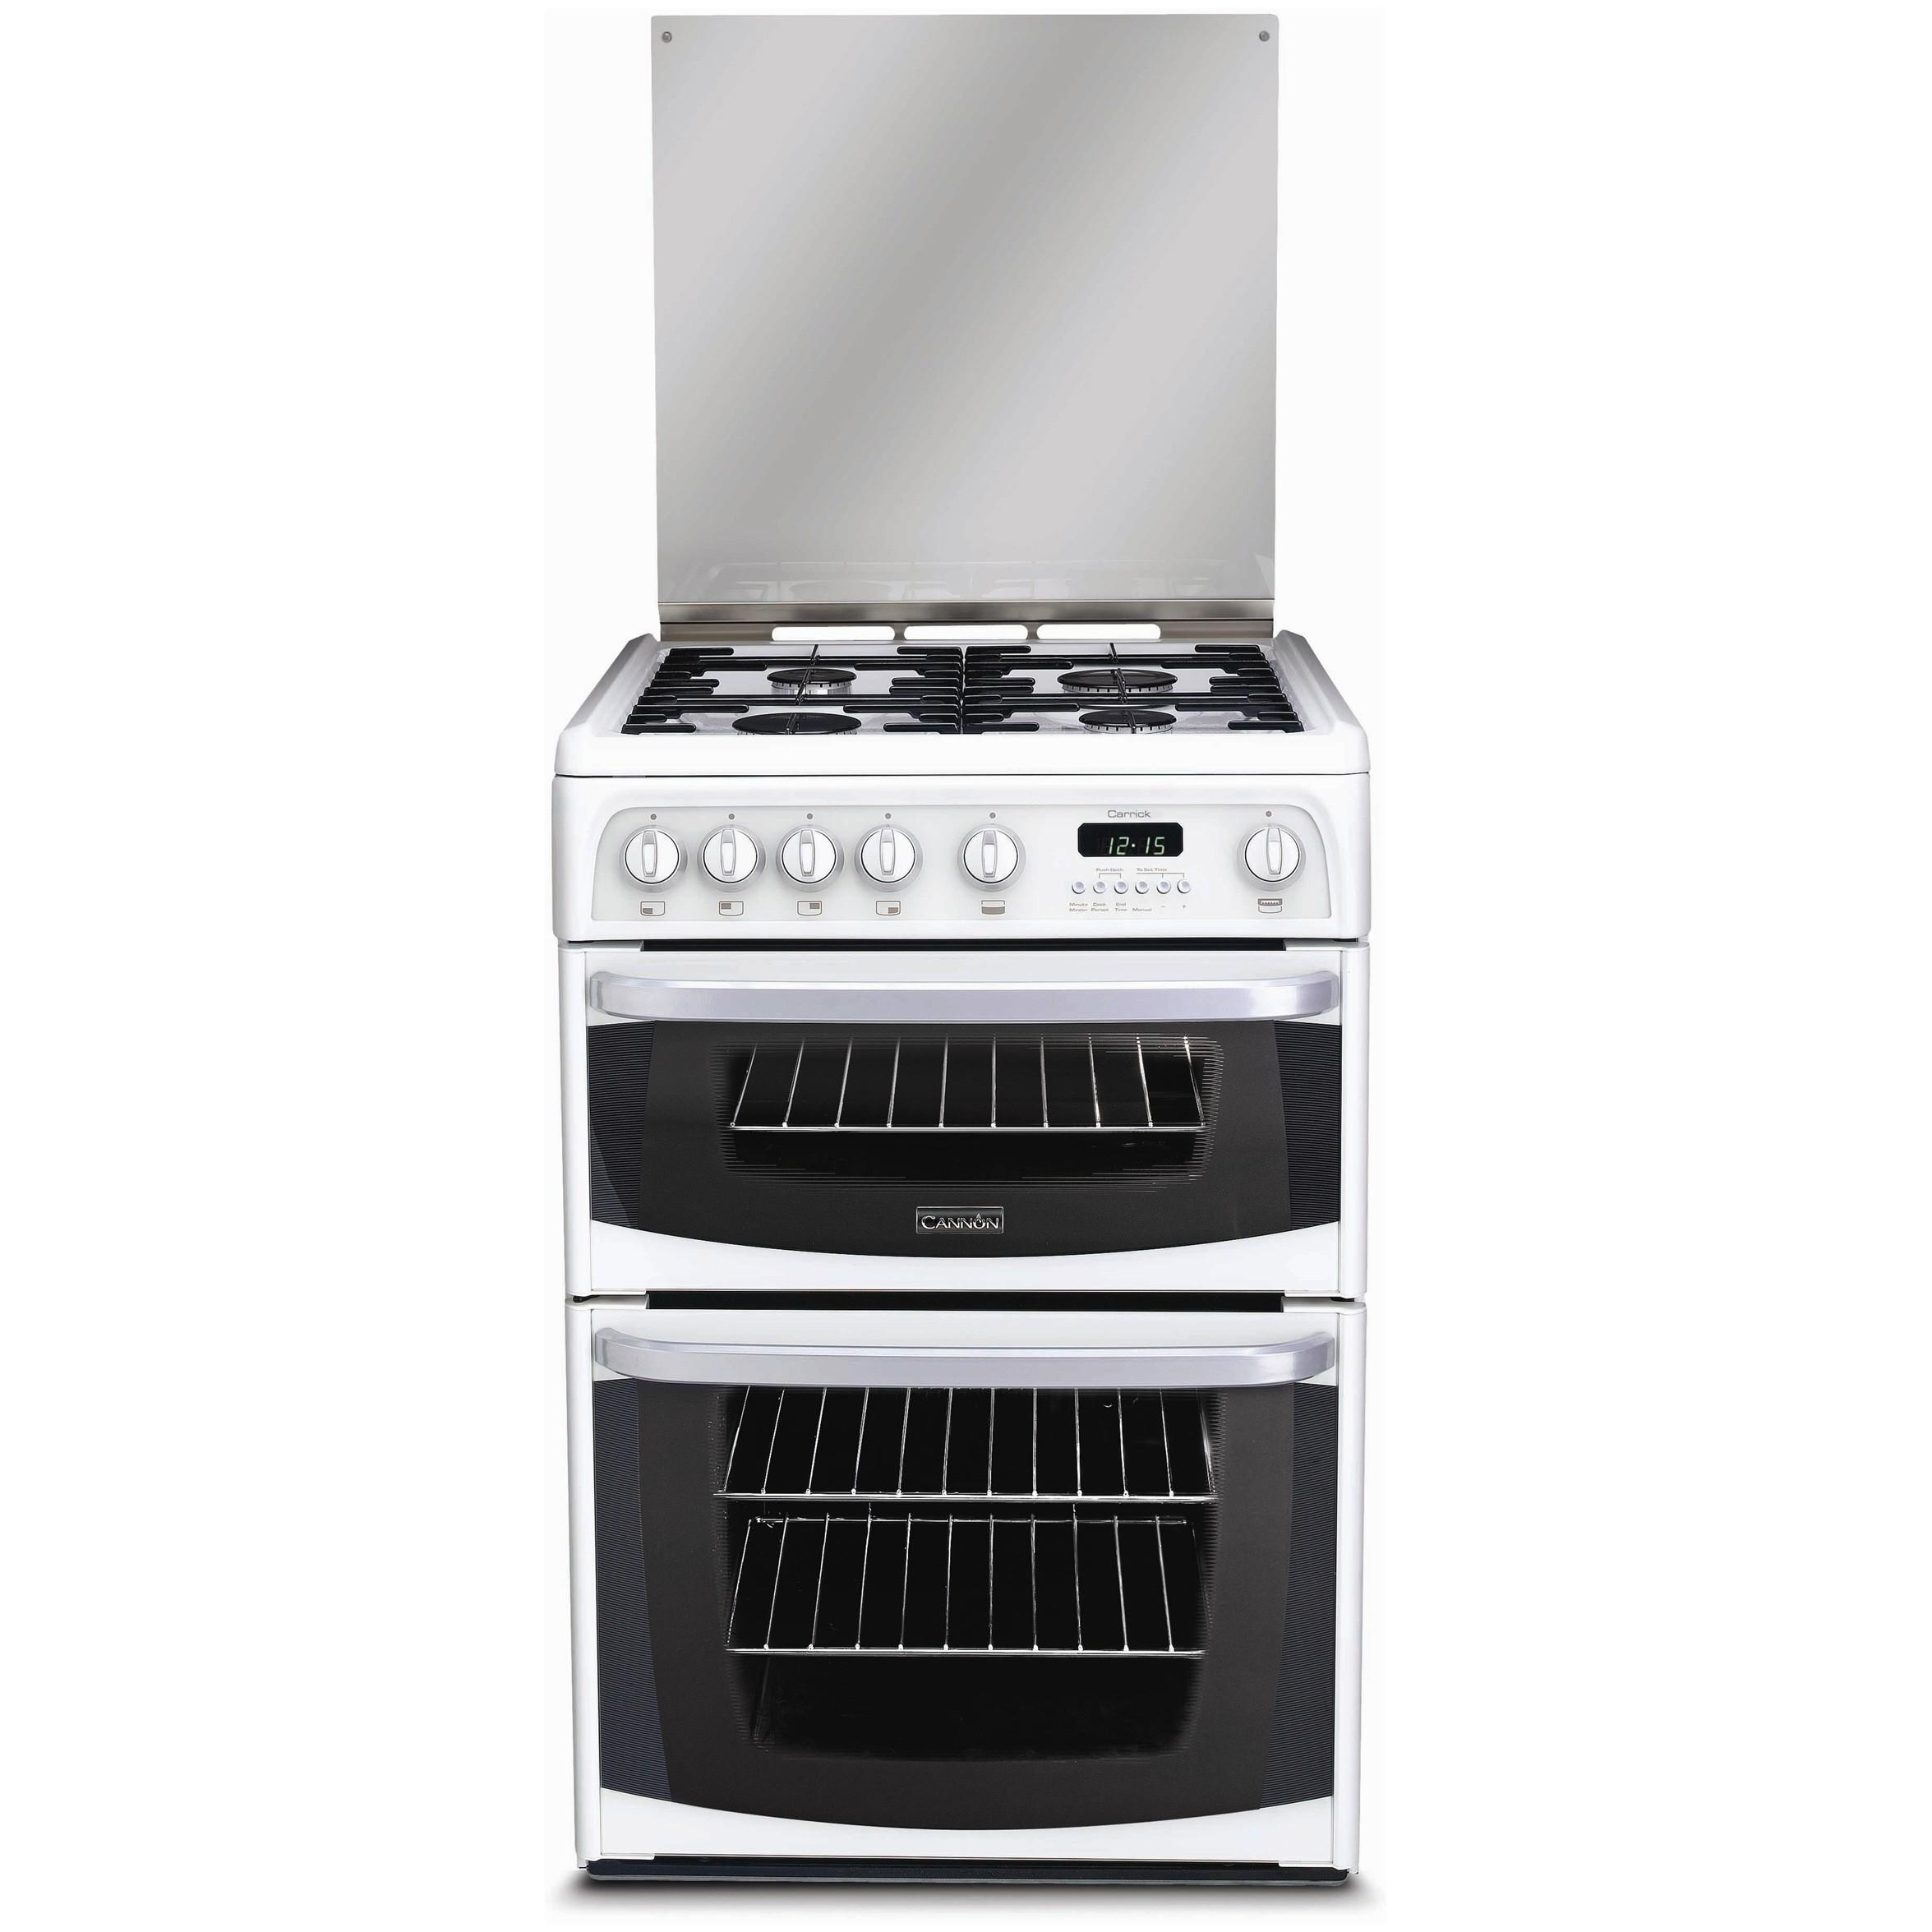 Kitchen Appliances Whole Kitchen Appliances I Cookers Ovens Washing Machines Freezers